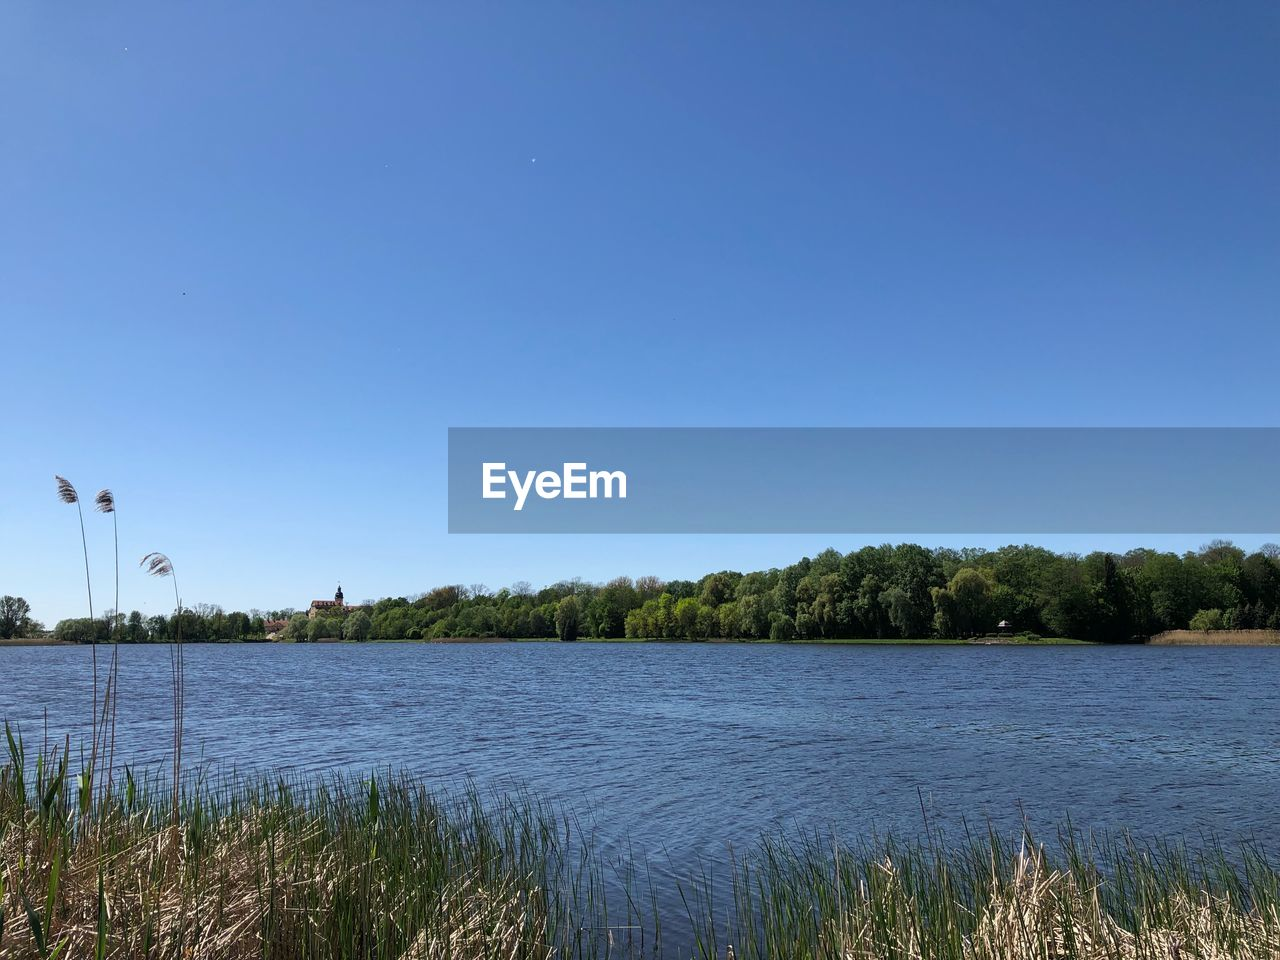 sky, water, plant, tree, clear sky, copy space, scenics - nature, nature, blue, lake, beauty in nature, no people, tranquility, day, tranquil scene, outdoors, non-urban scene, grass